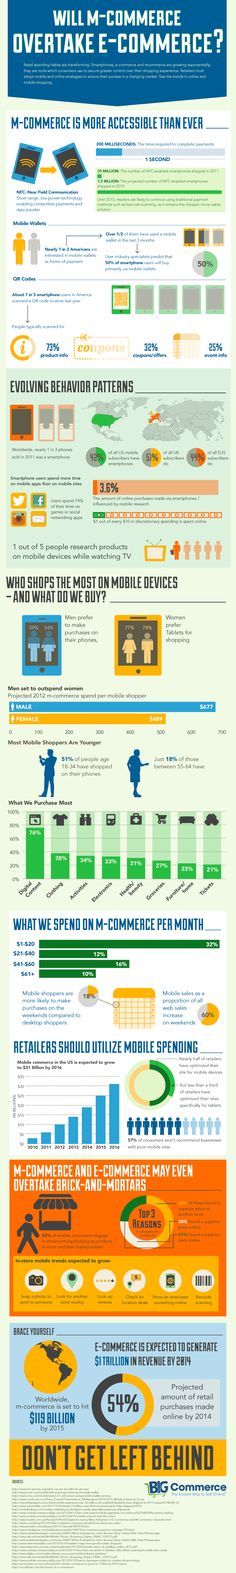 Will m-commerce overtake other payment options? [infographic] | Econsultancy